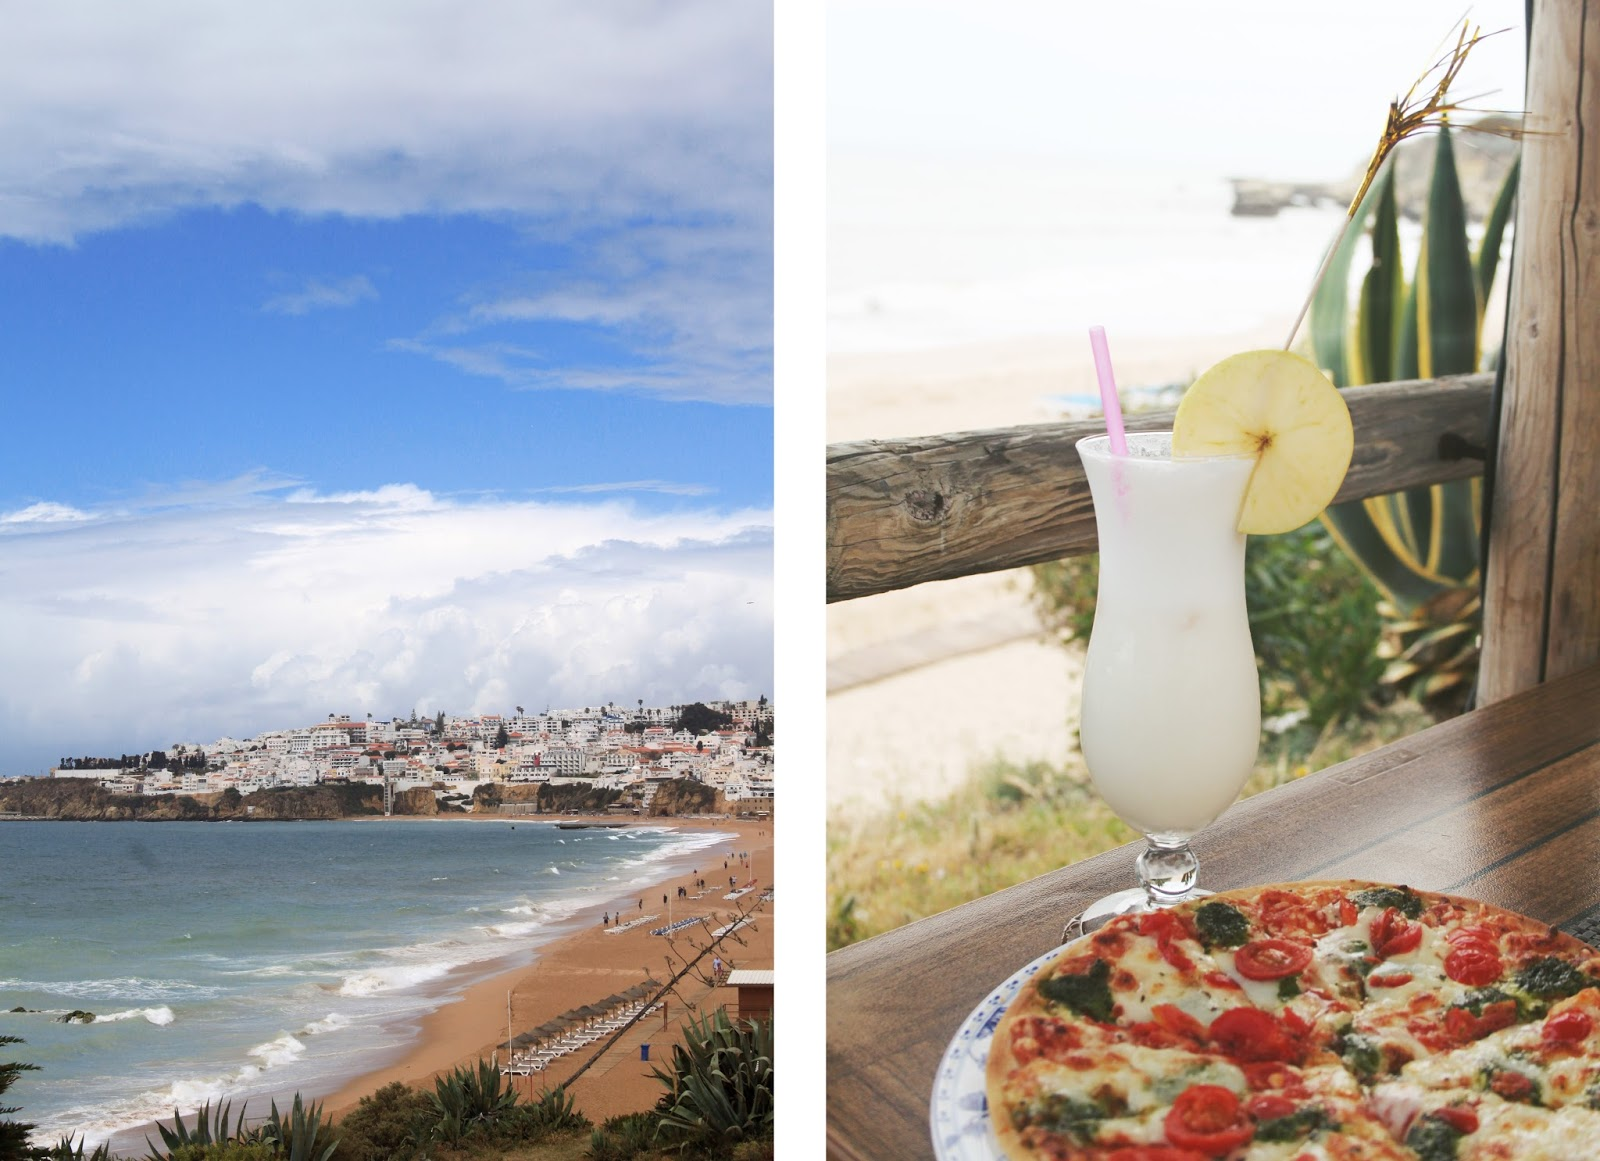 Sea view and lunch in Albufeira